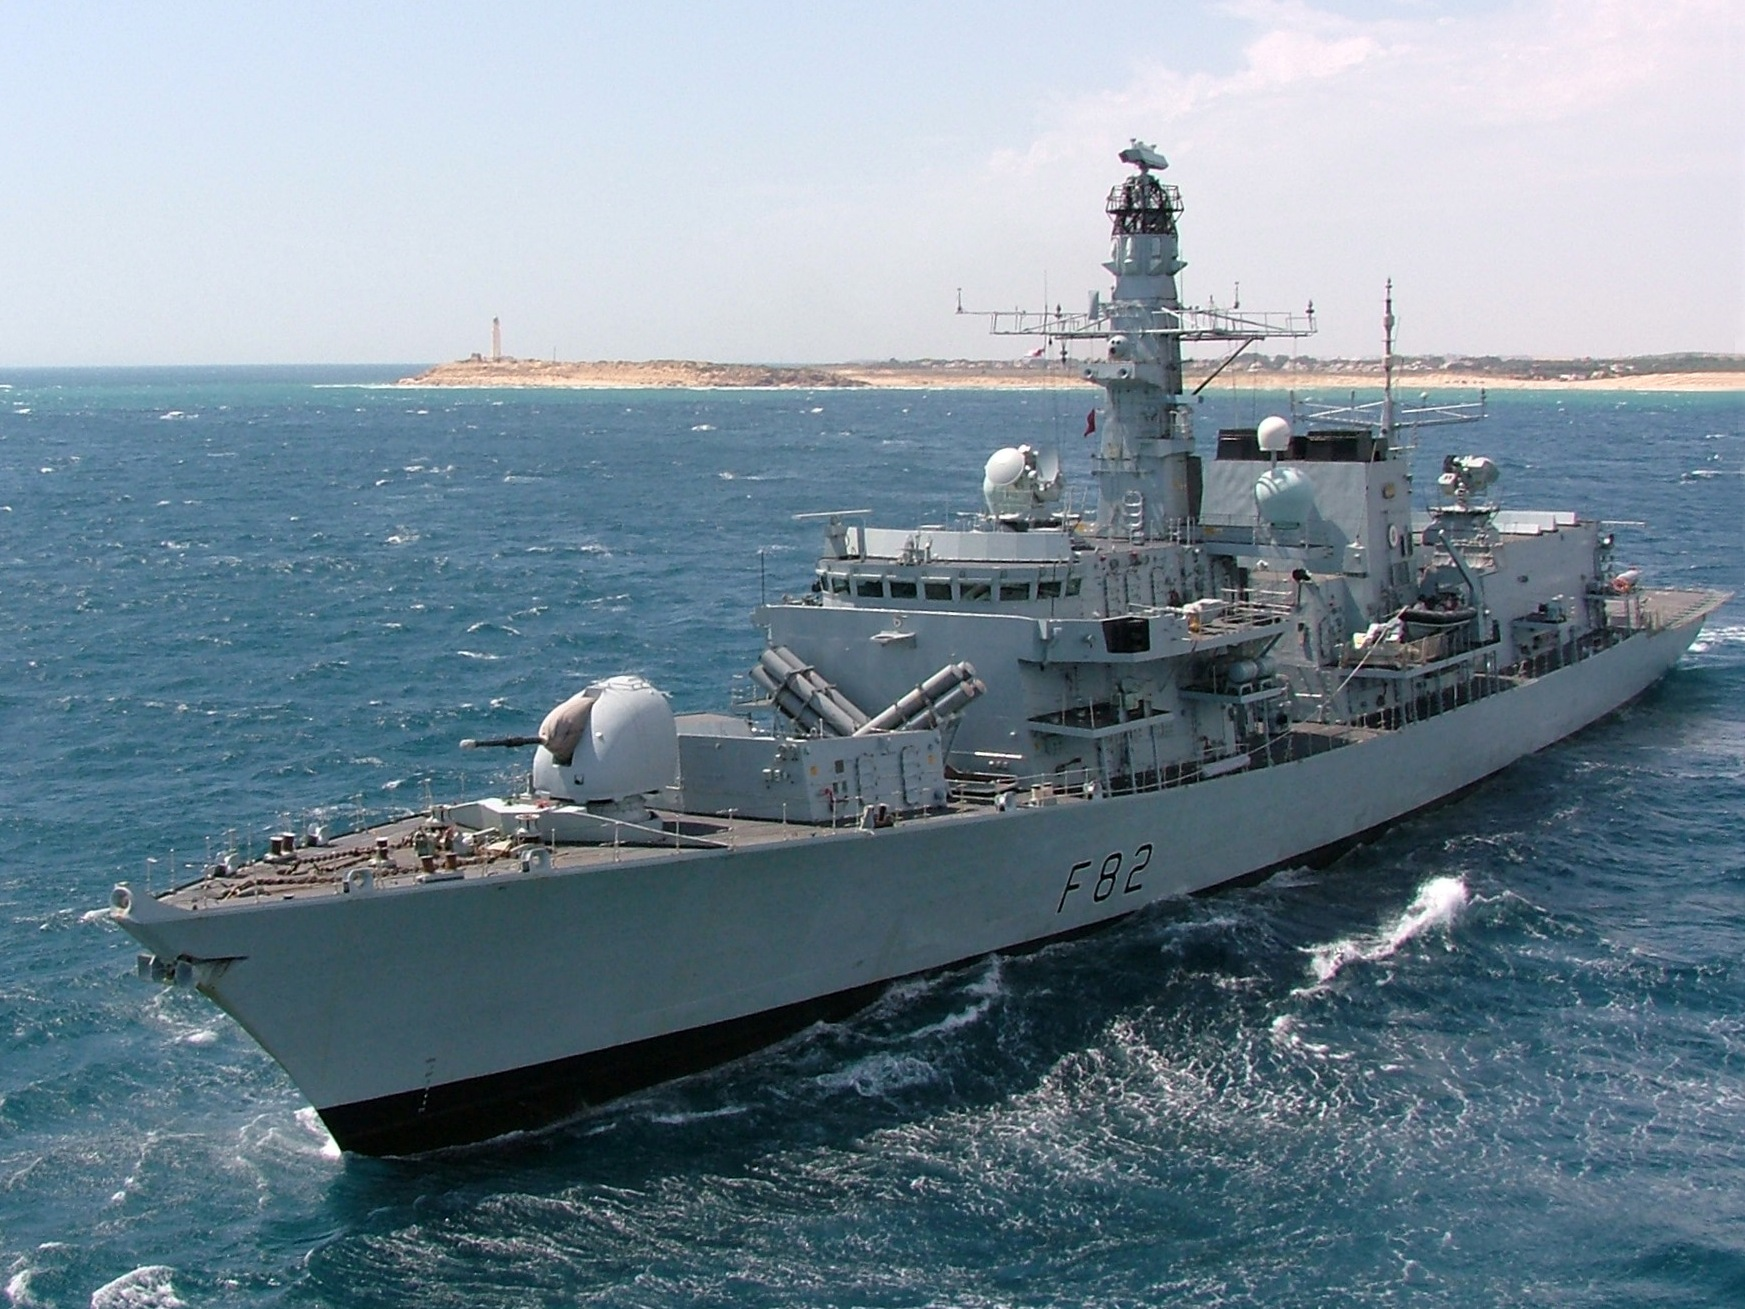 The HMS Somerset (F82) belonging to the Royal Navy (Photo Credit: Wikipedia)